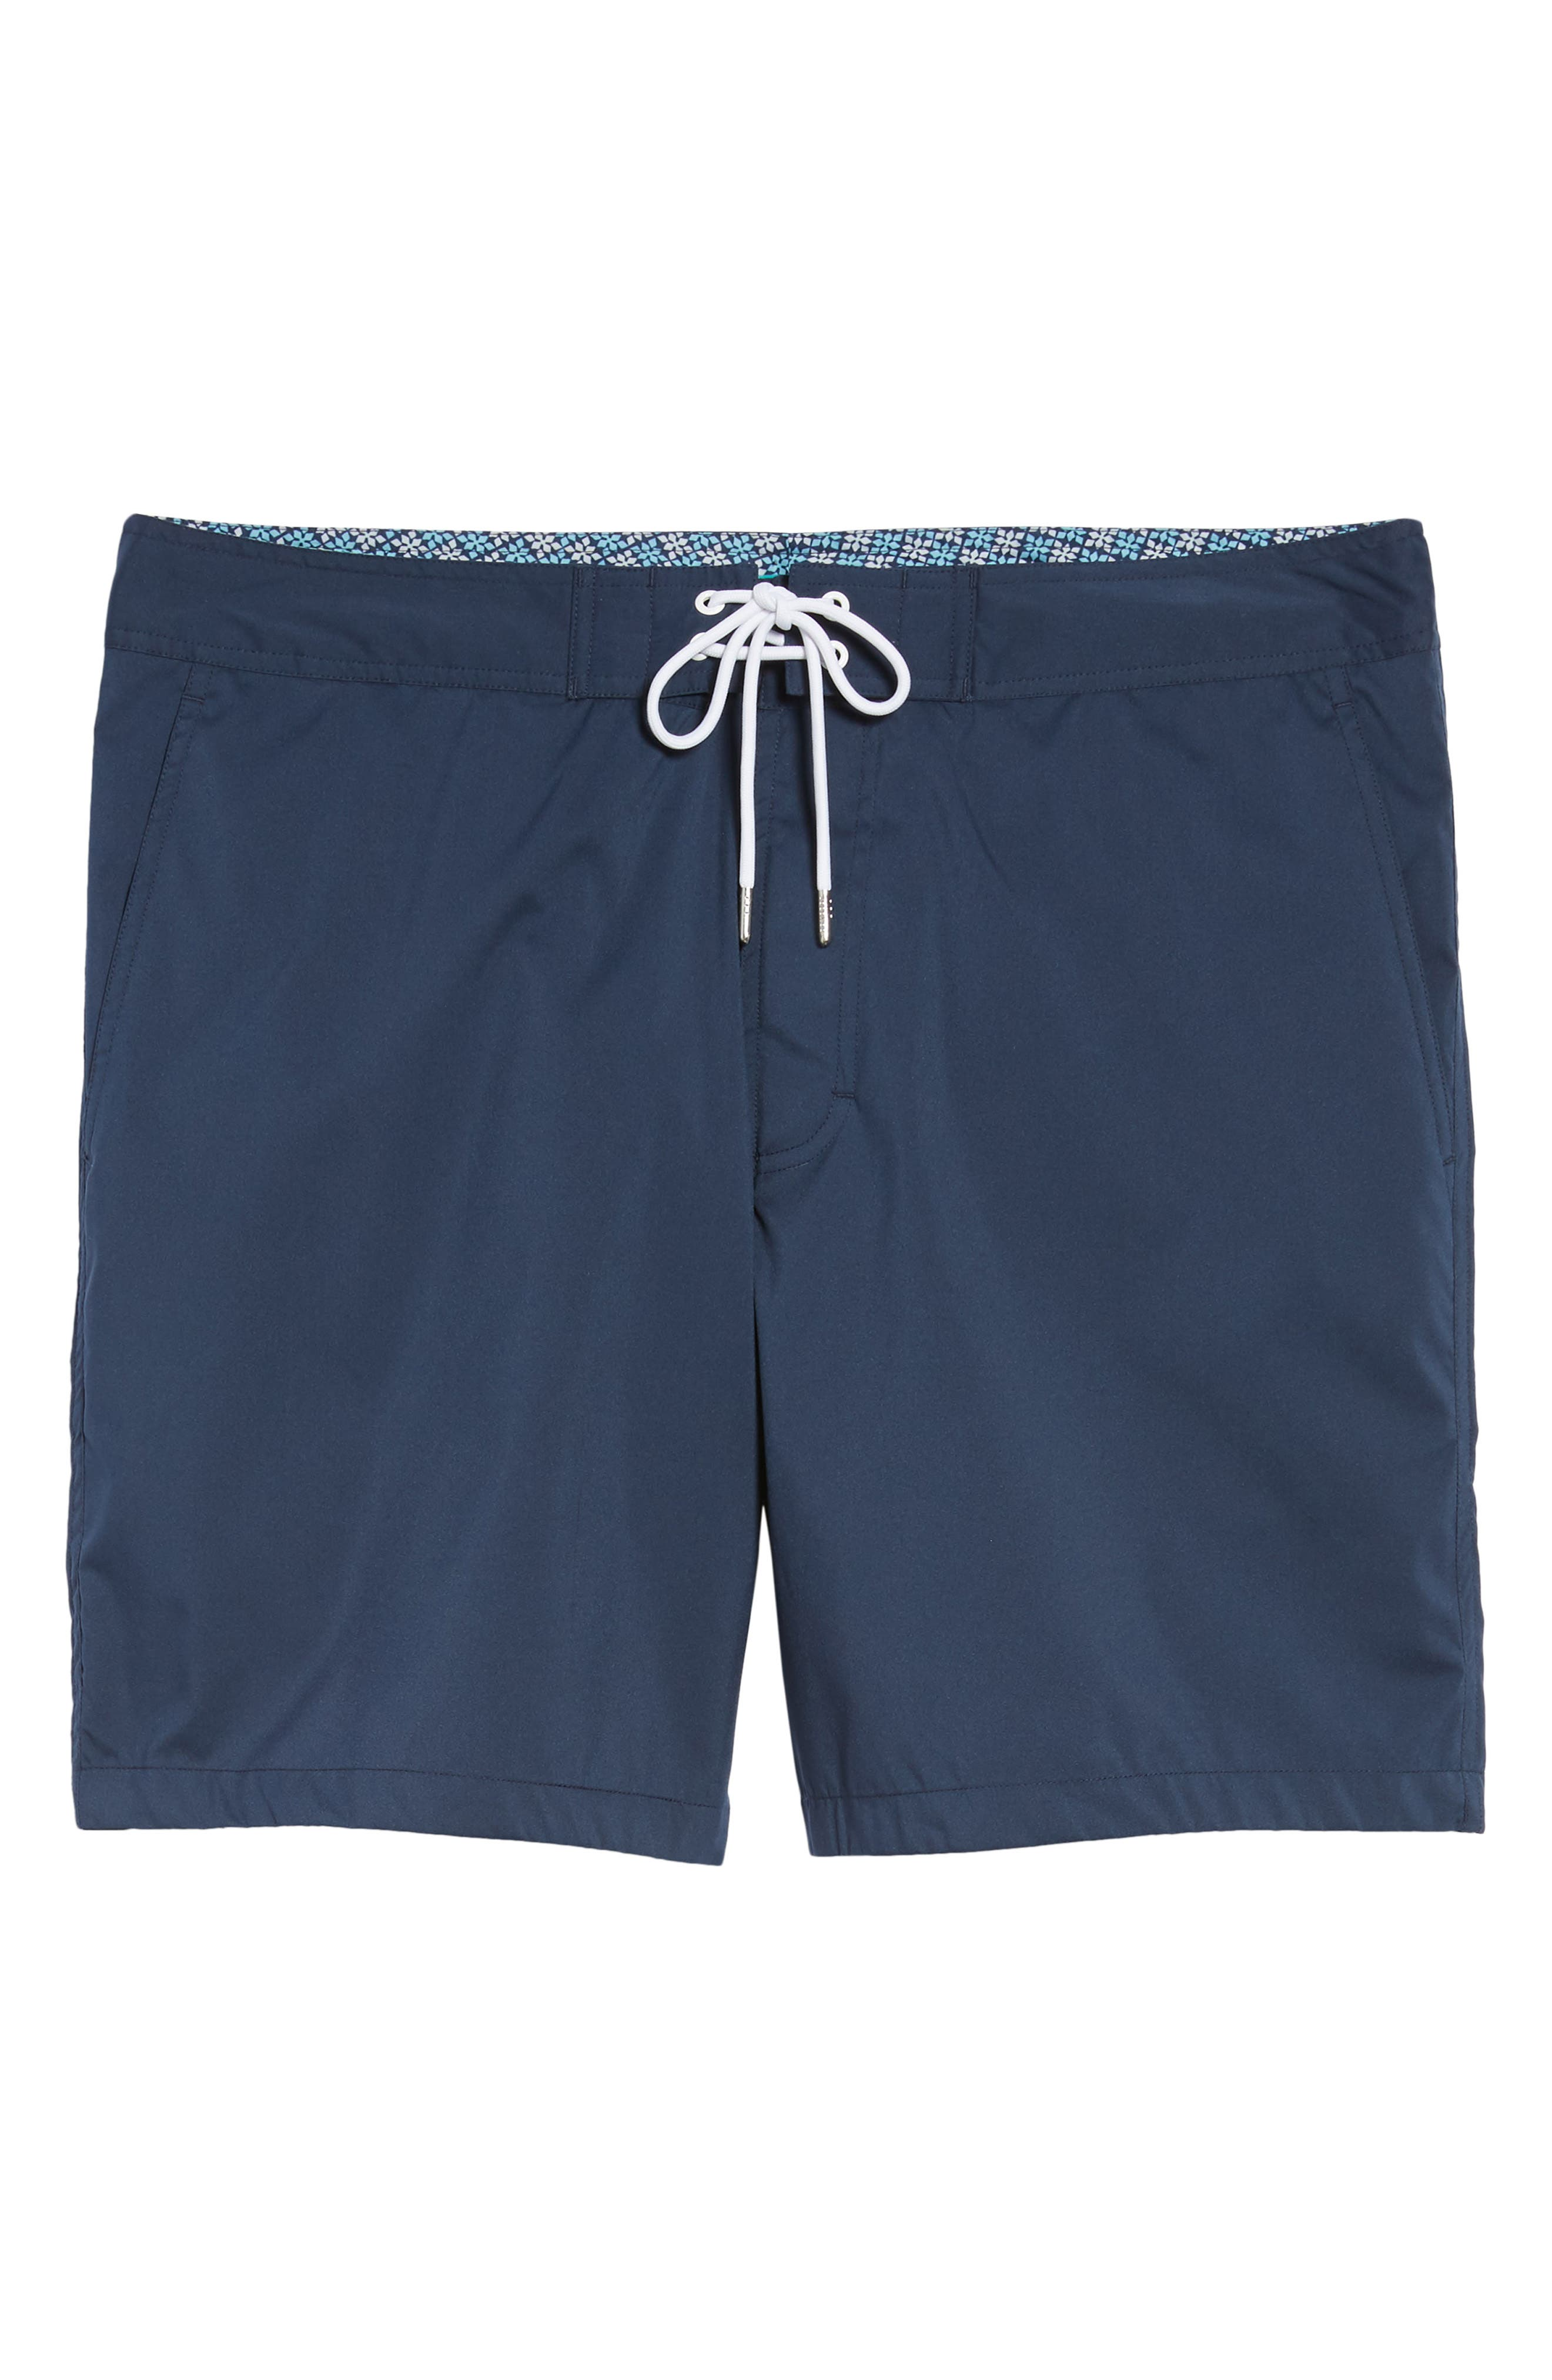 Solid 7-Inch Swim Trunks,                             Alternate thumbnail 6, color,                             Indio